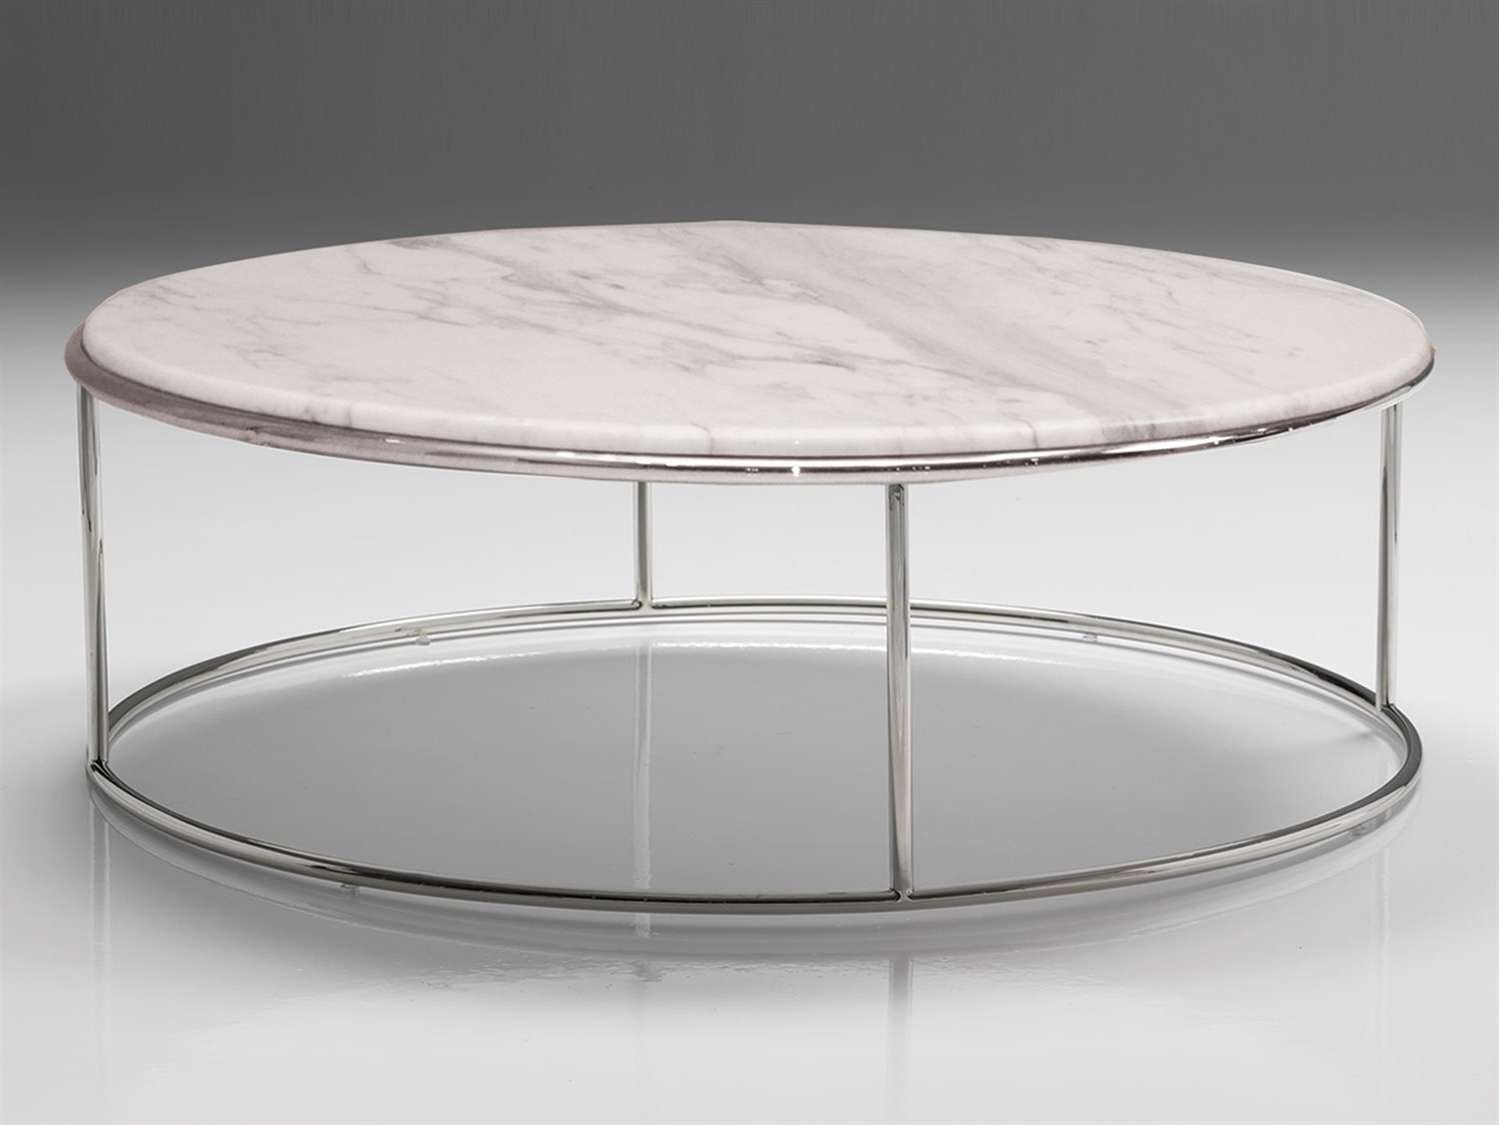 Well Known Marble Round Coffee Tables Intended For Round Marble Coffee Table Canada White Marble Coffee Table For (View 9 of 20)